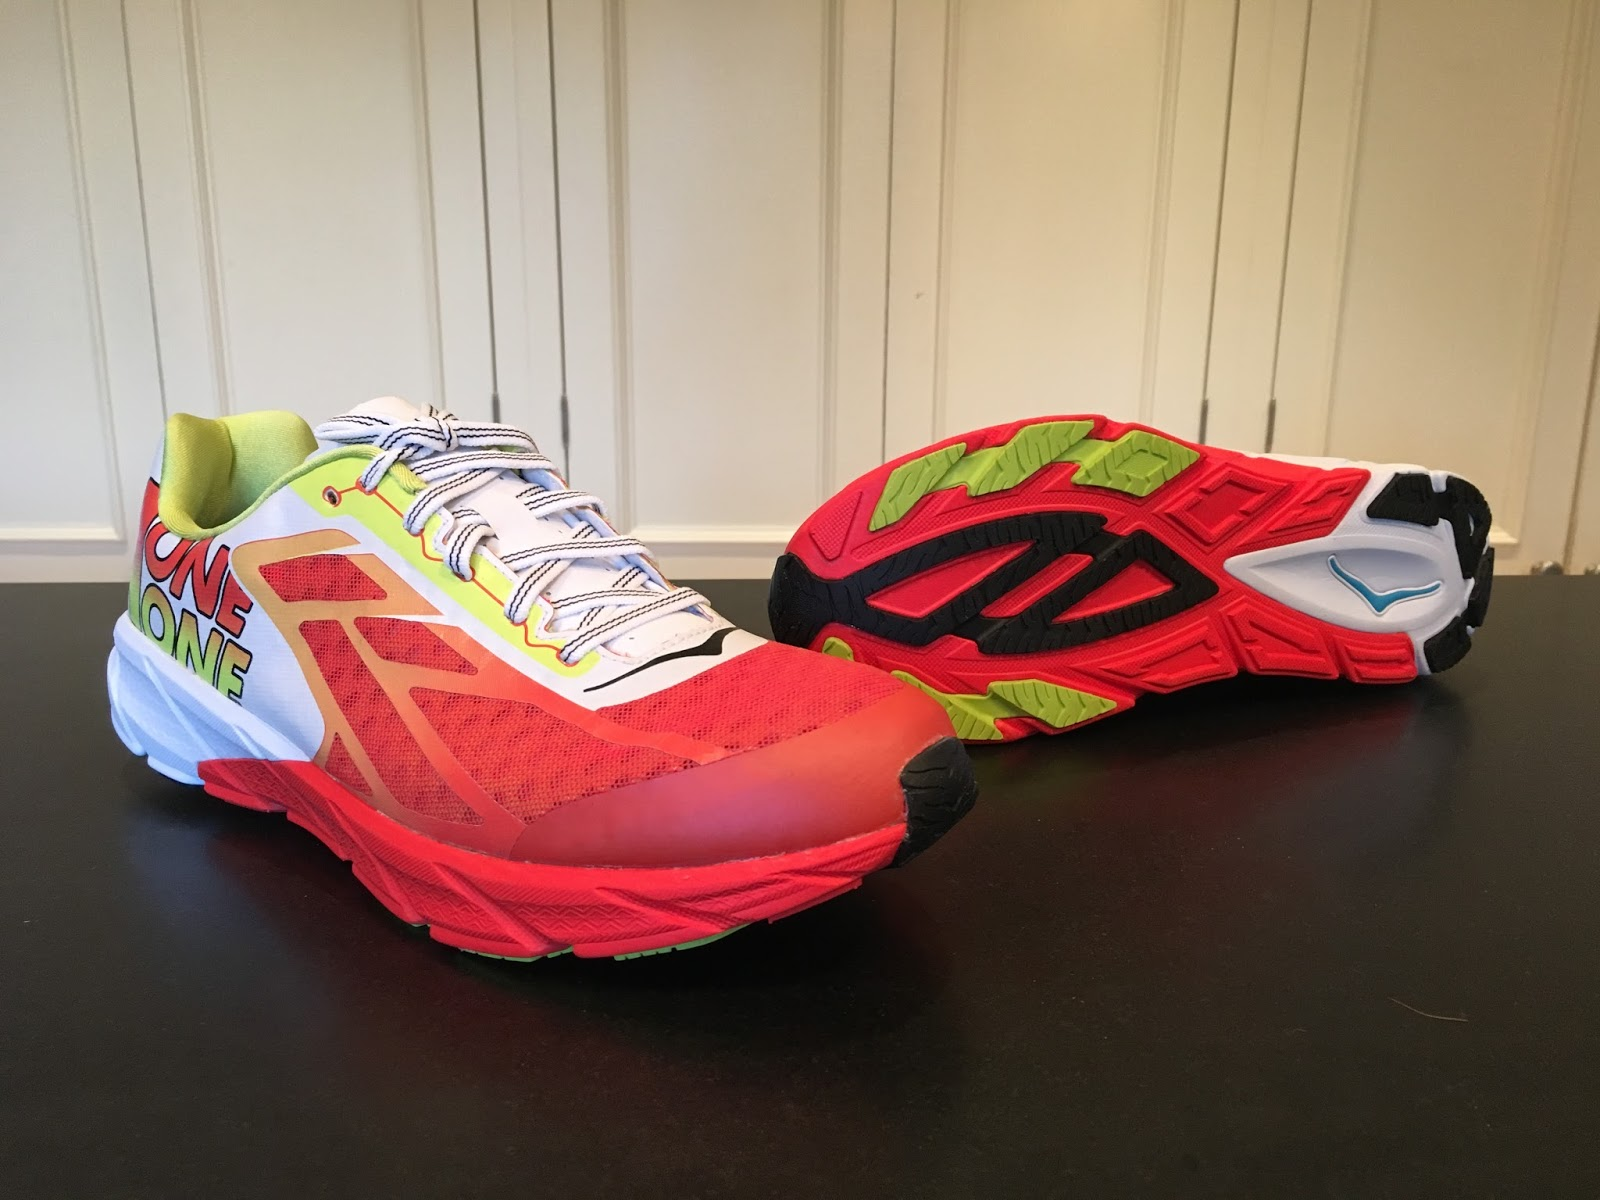 Road Trail Run  Review-HOKA ONE ONE Tracer  A Fast 4d7c1e3a75c